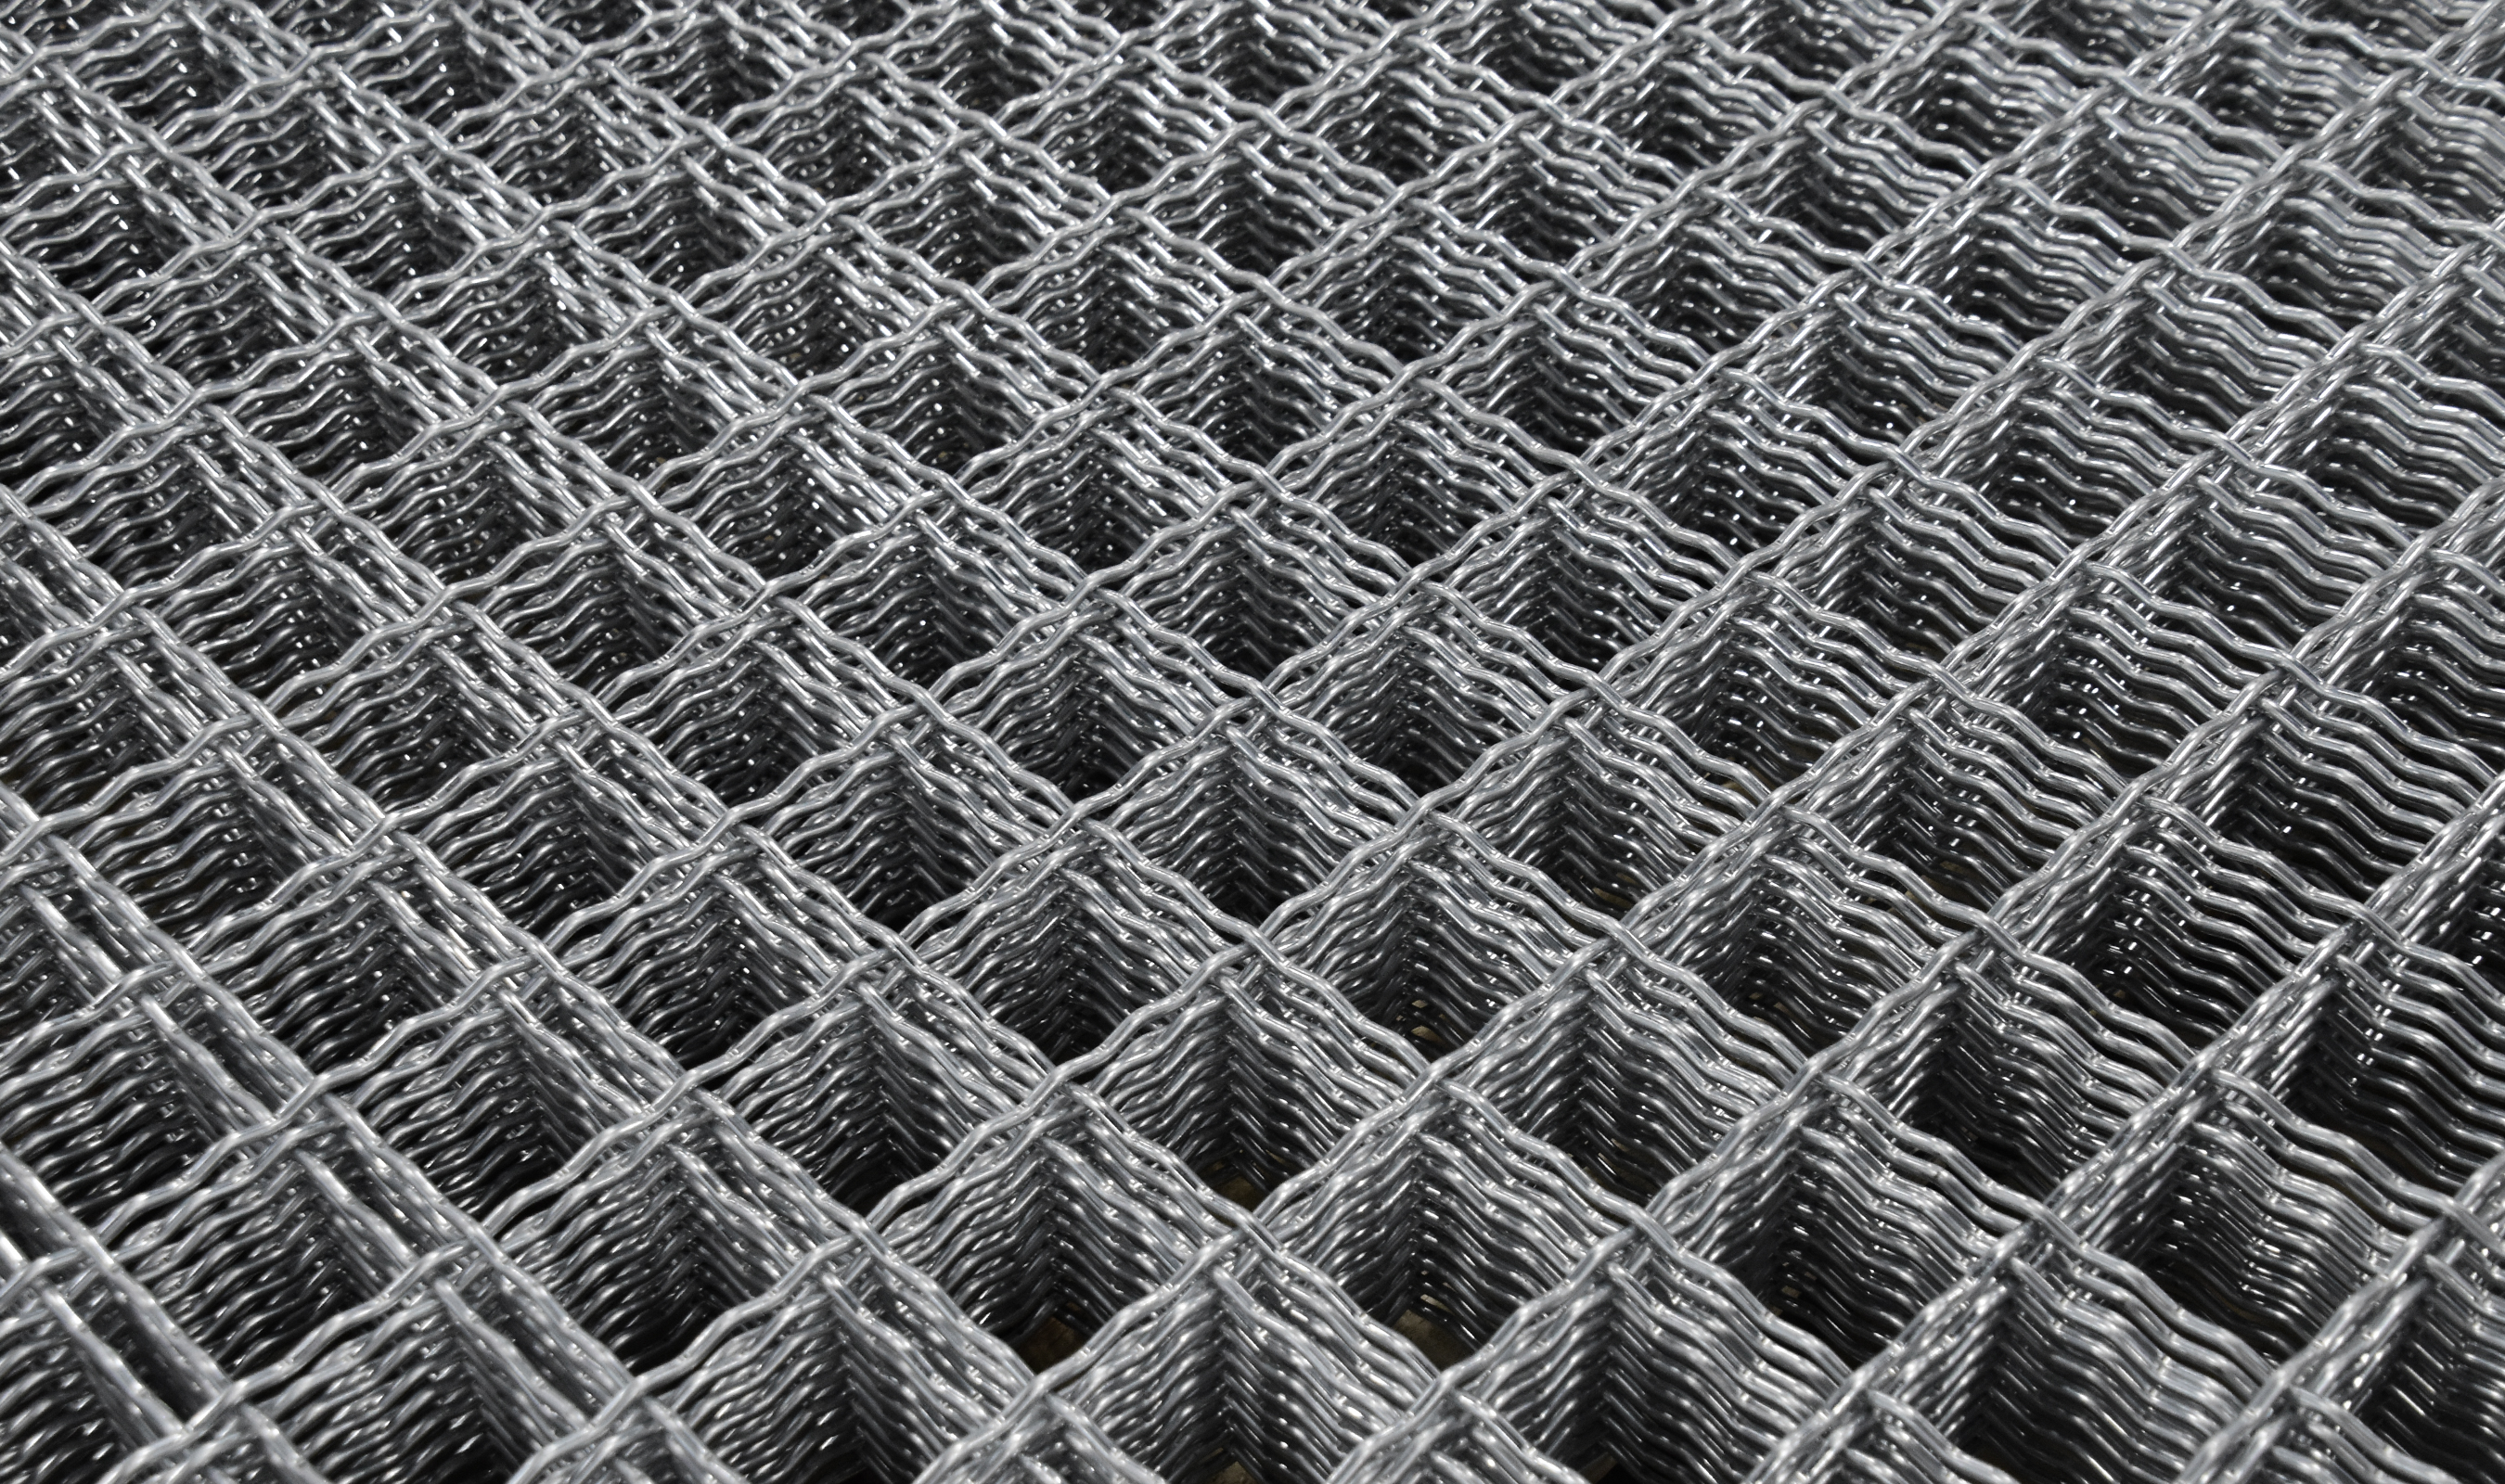 I-73 wire mesh pattern woven in Pre-Galv material